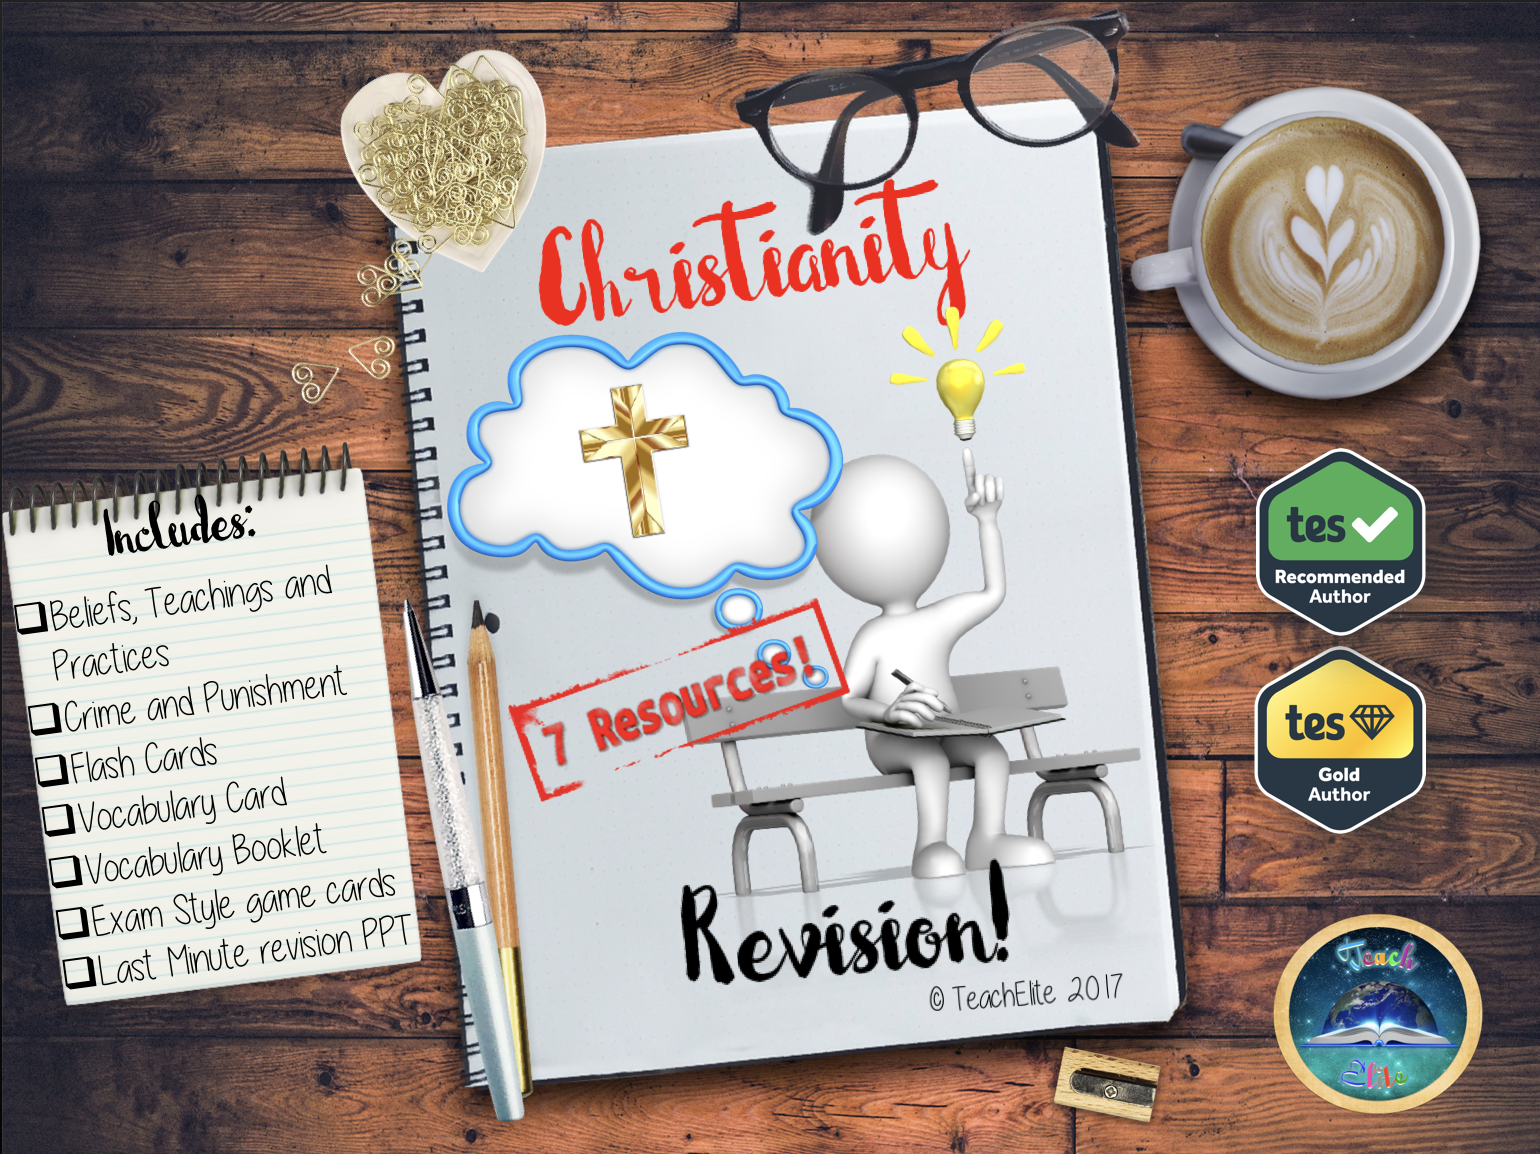 Christianity Revision